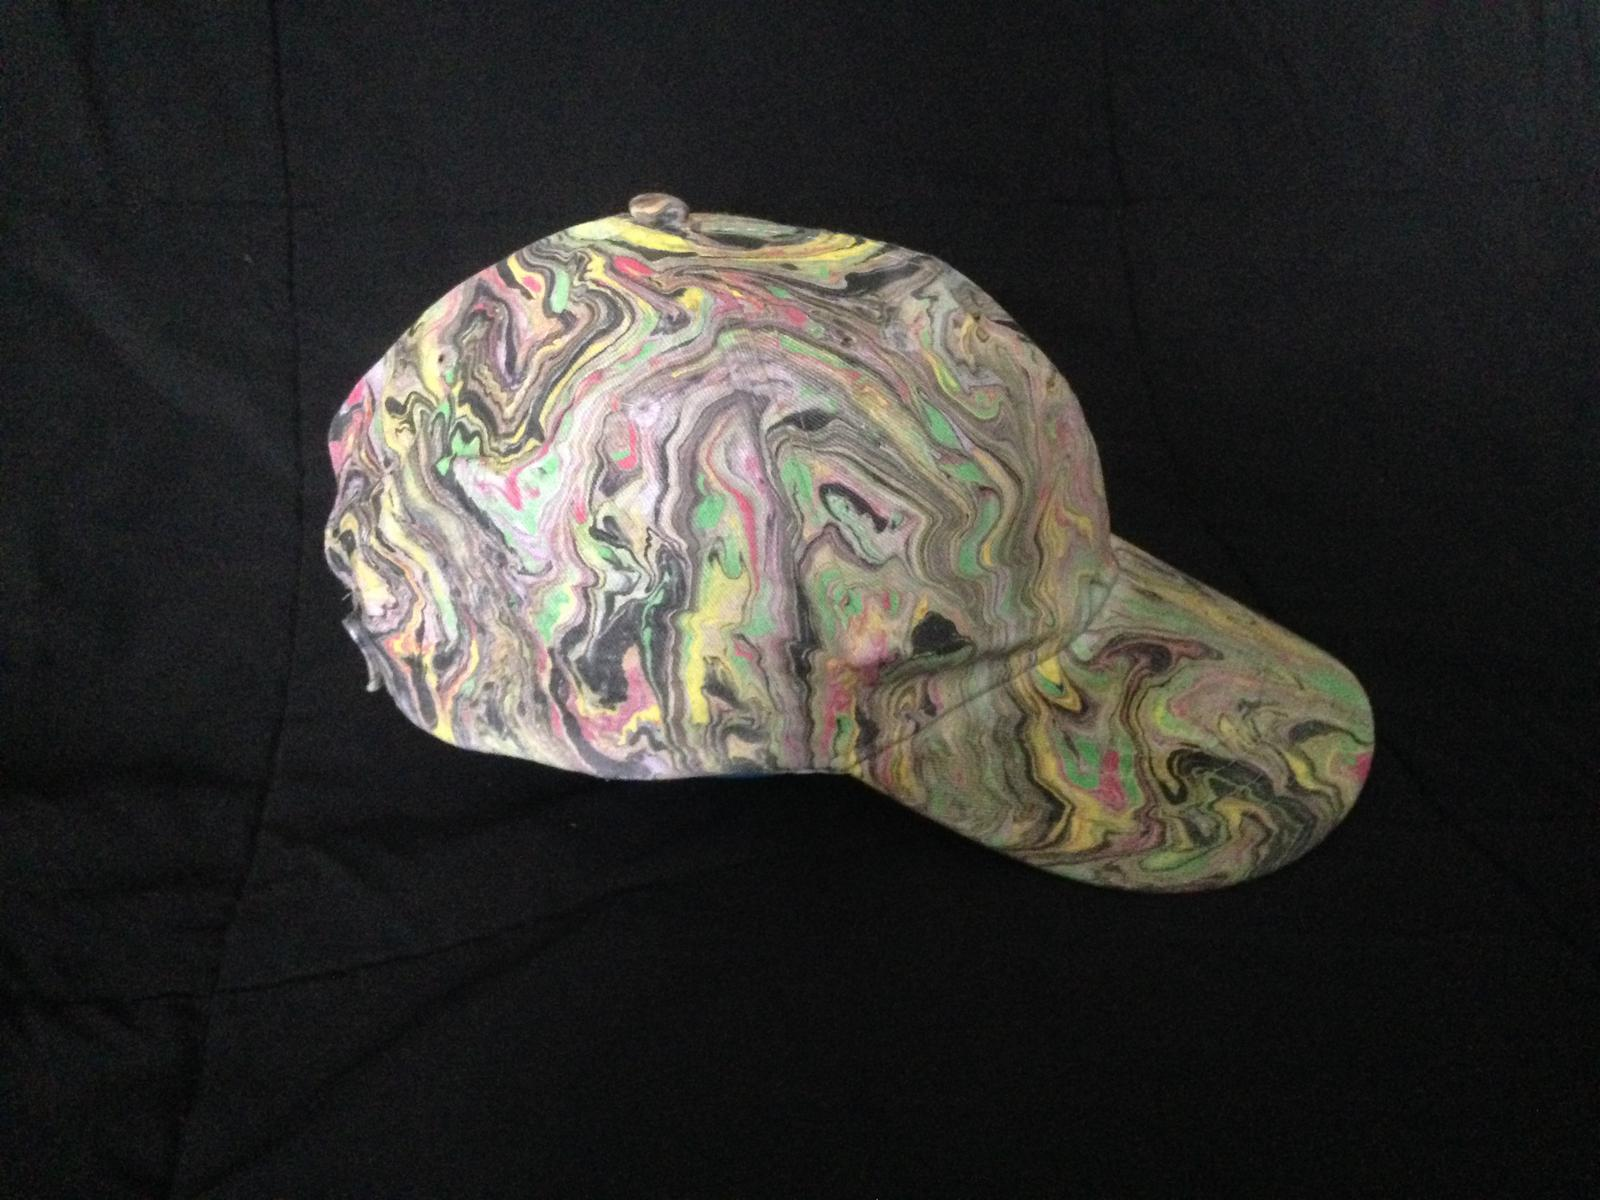 Premarbled hats